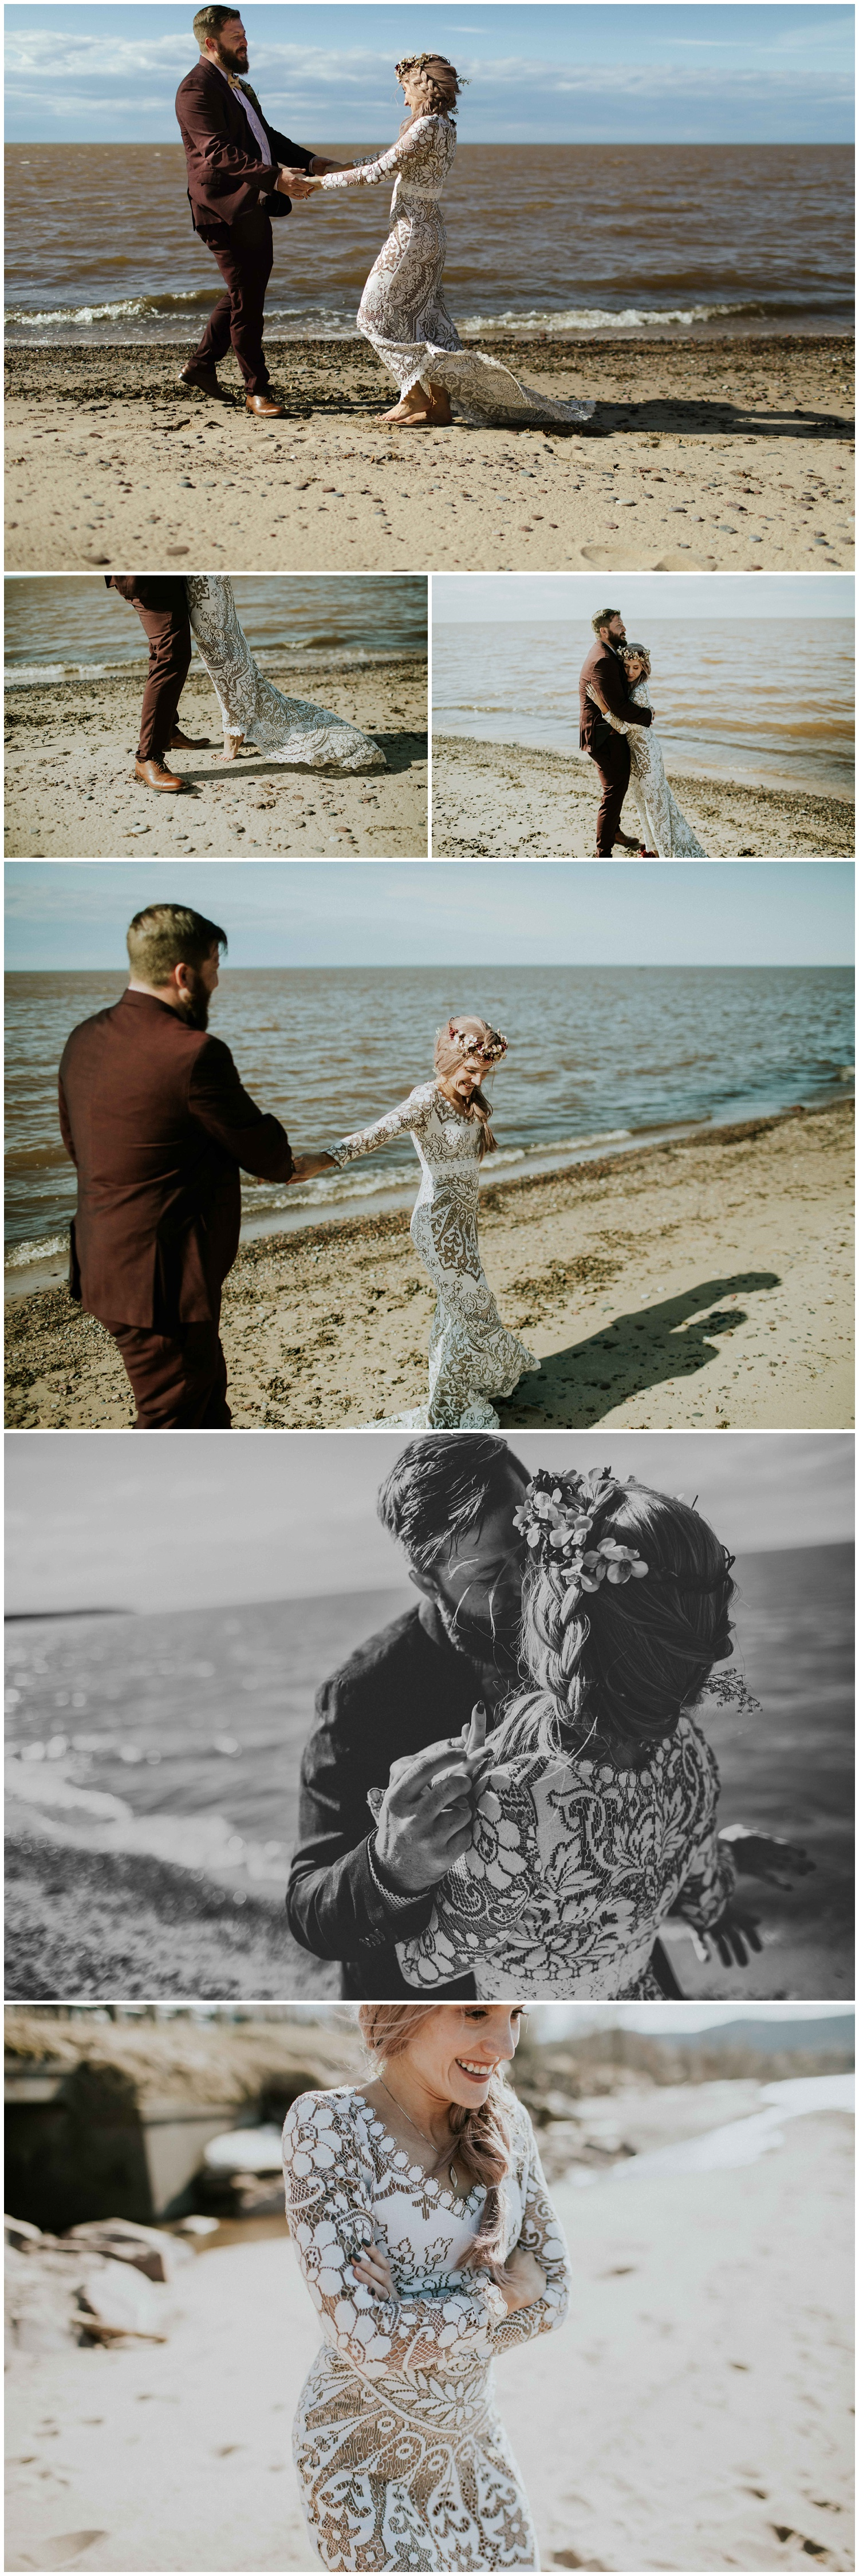 Porcupine Mountains May the Fourth Boho Star Wars Wedding Wisconsin Photographer Chloe Ann Photography_0015.jpg